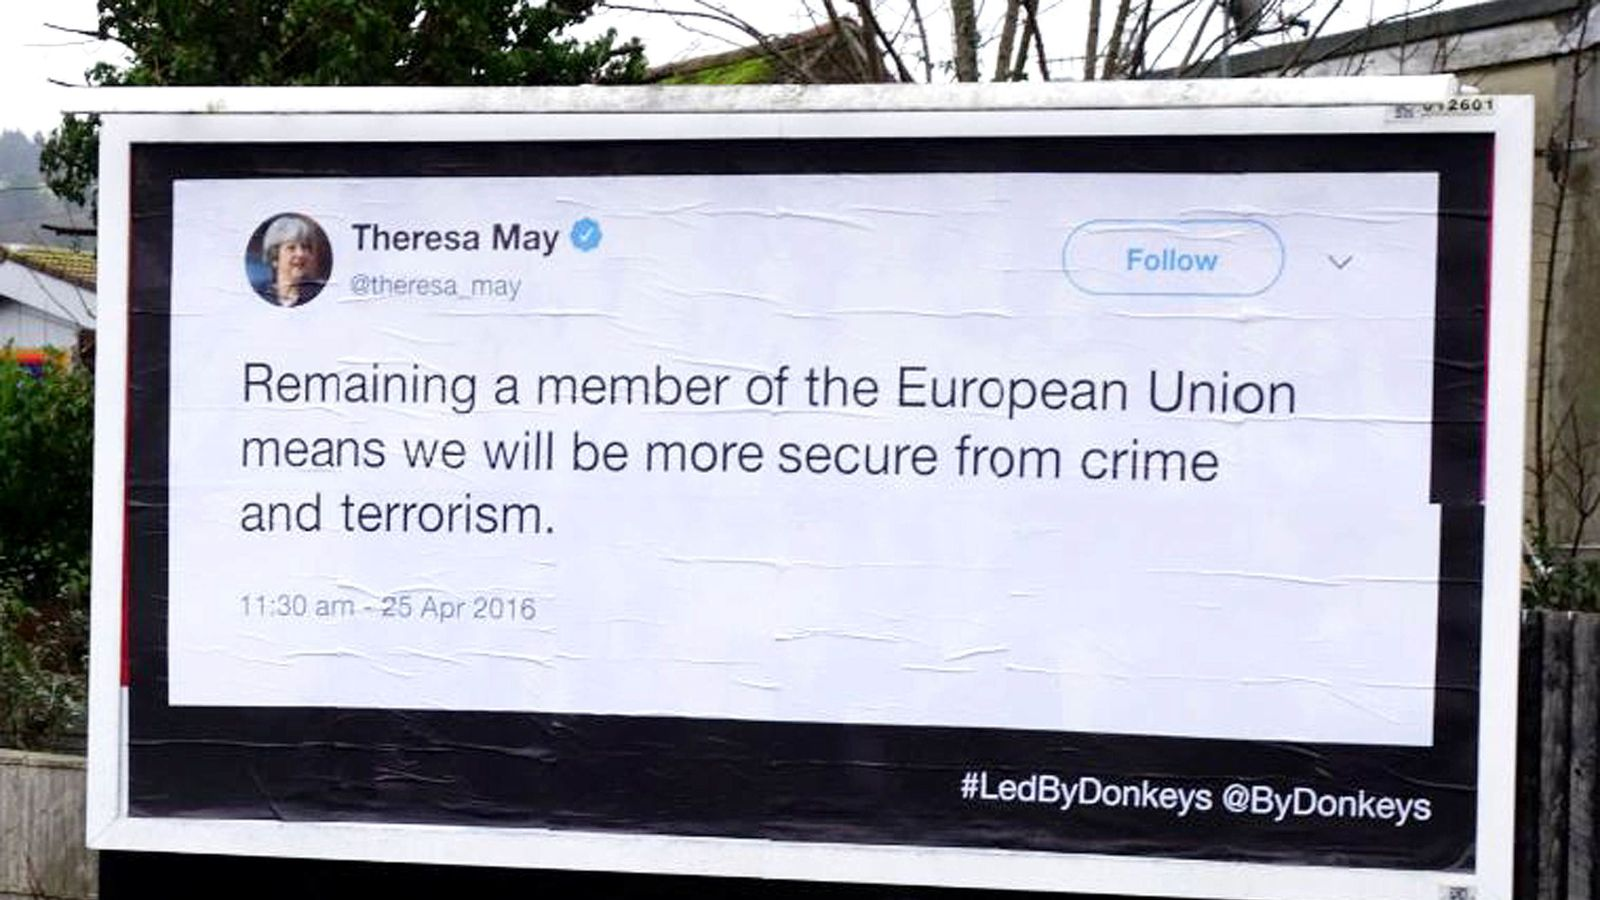 Brexit tweets MPs 'can't delete' shown on billboards